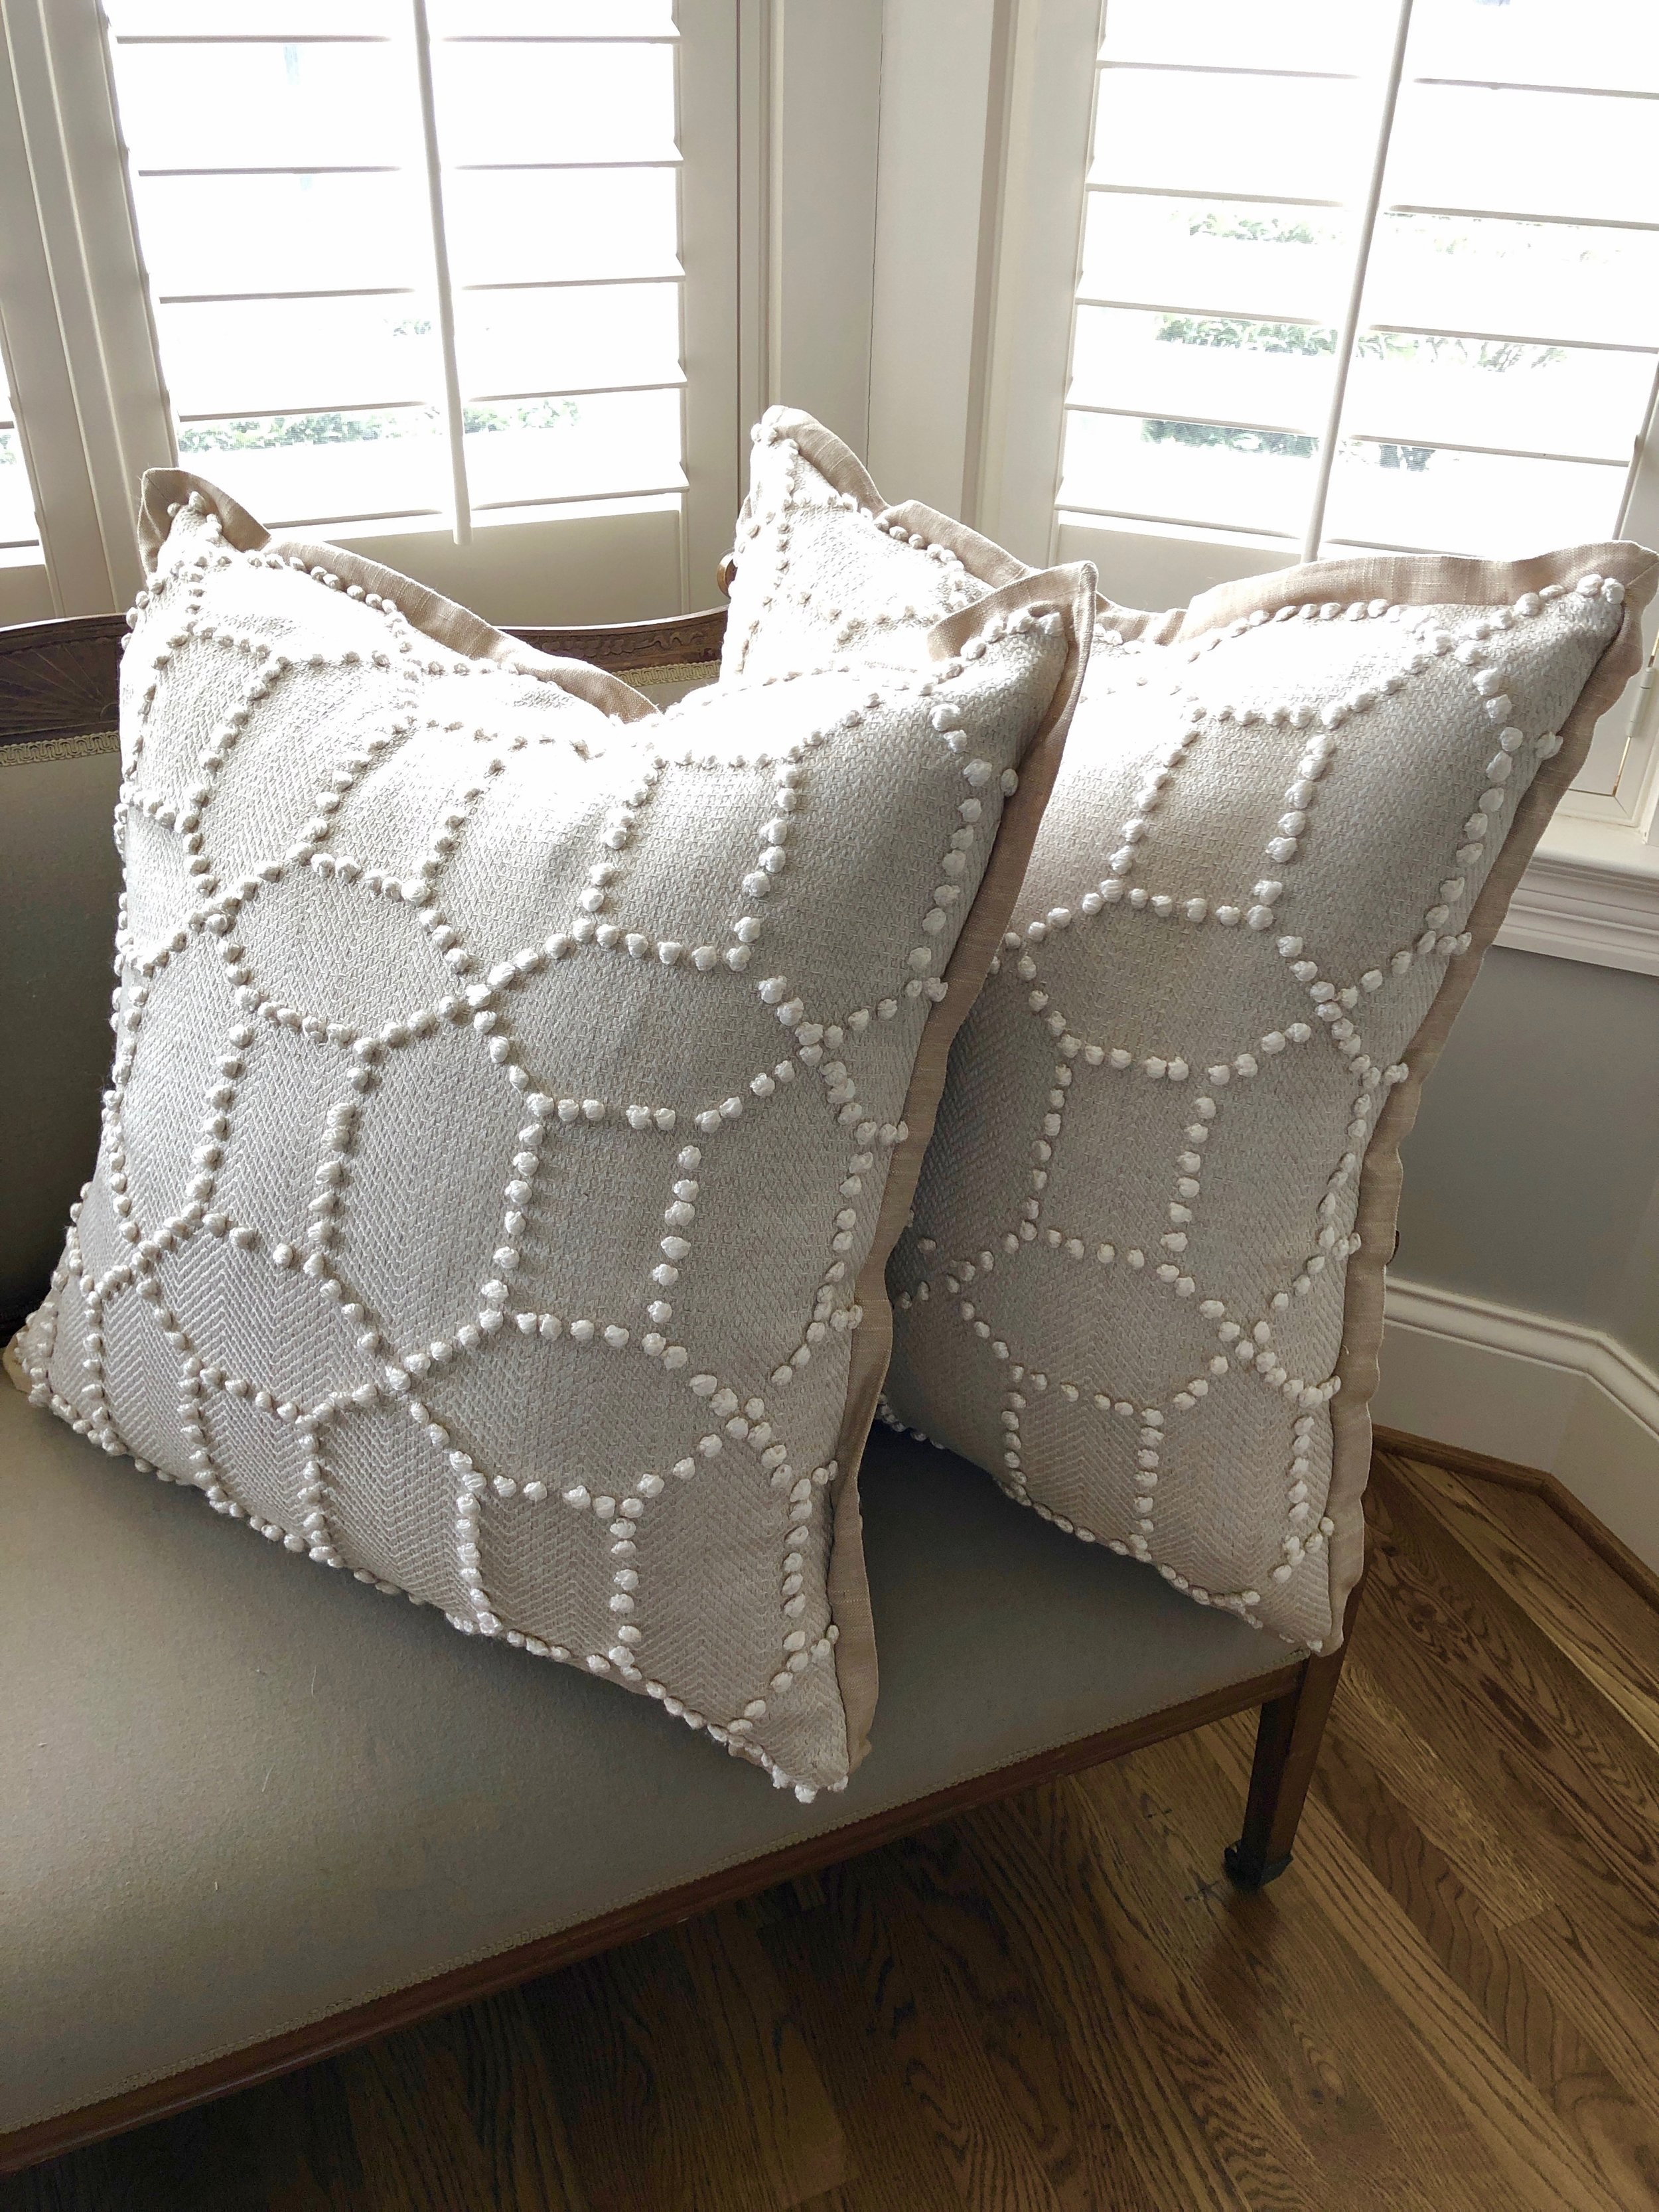 Schumacher Vento %22Natural%22 pillows.jpg